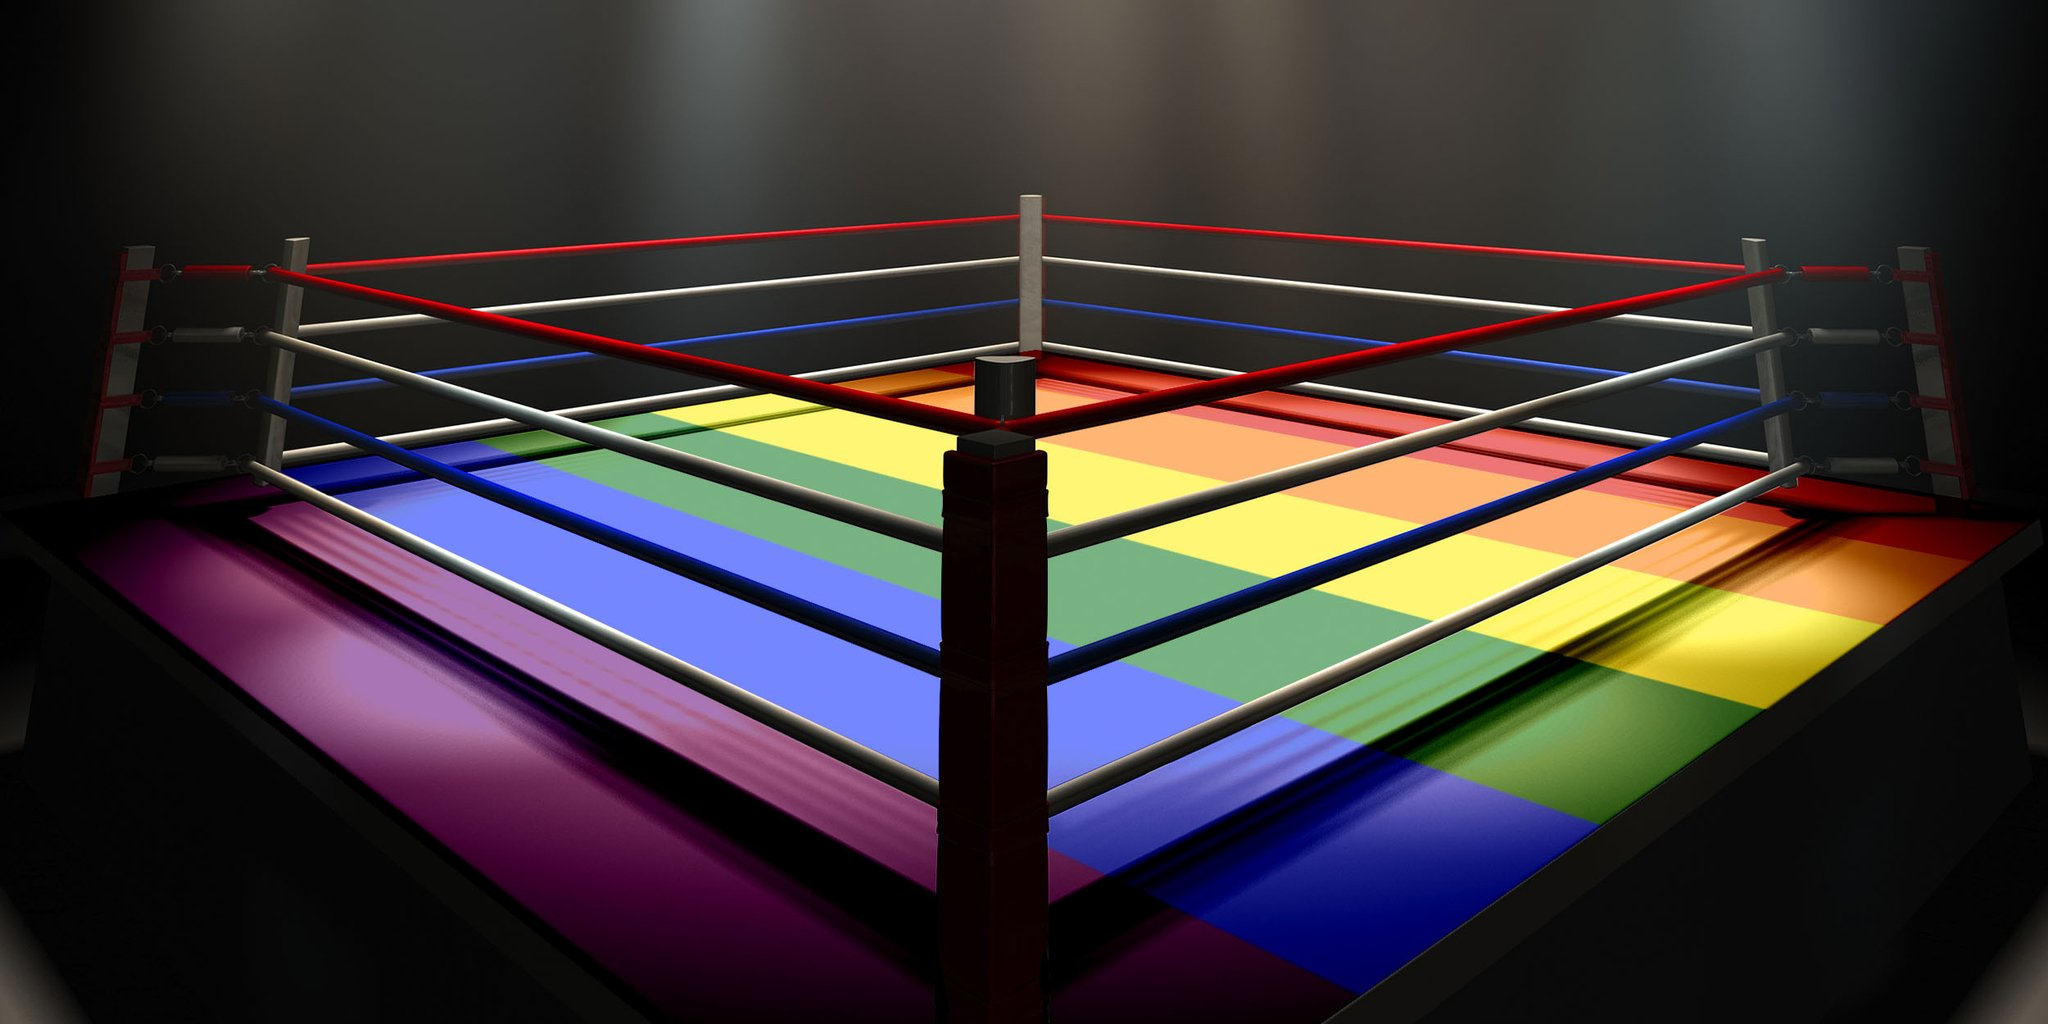 WWE Says LGBT Wrestling Storylines Are Coming Soon